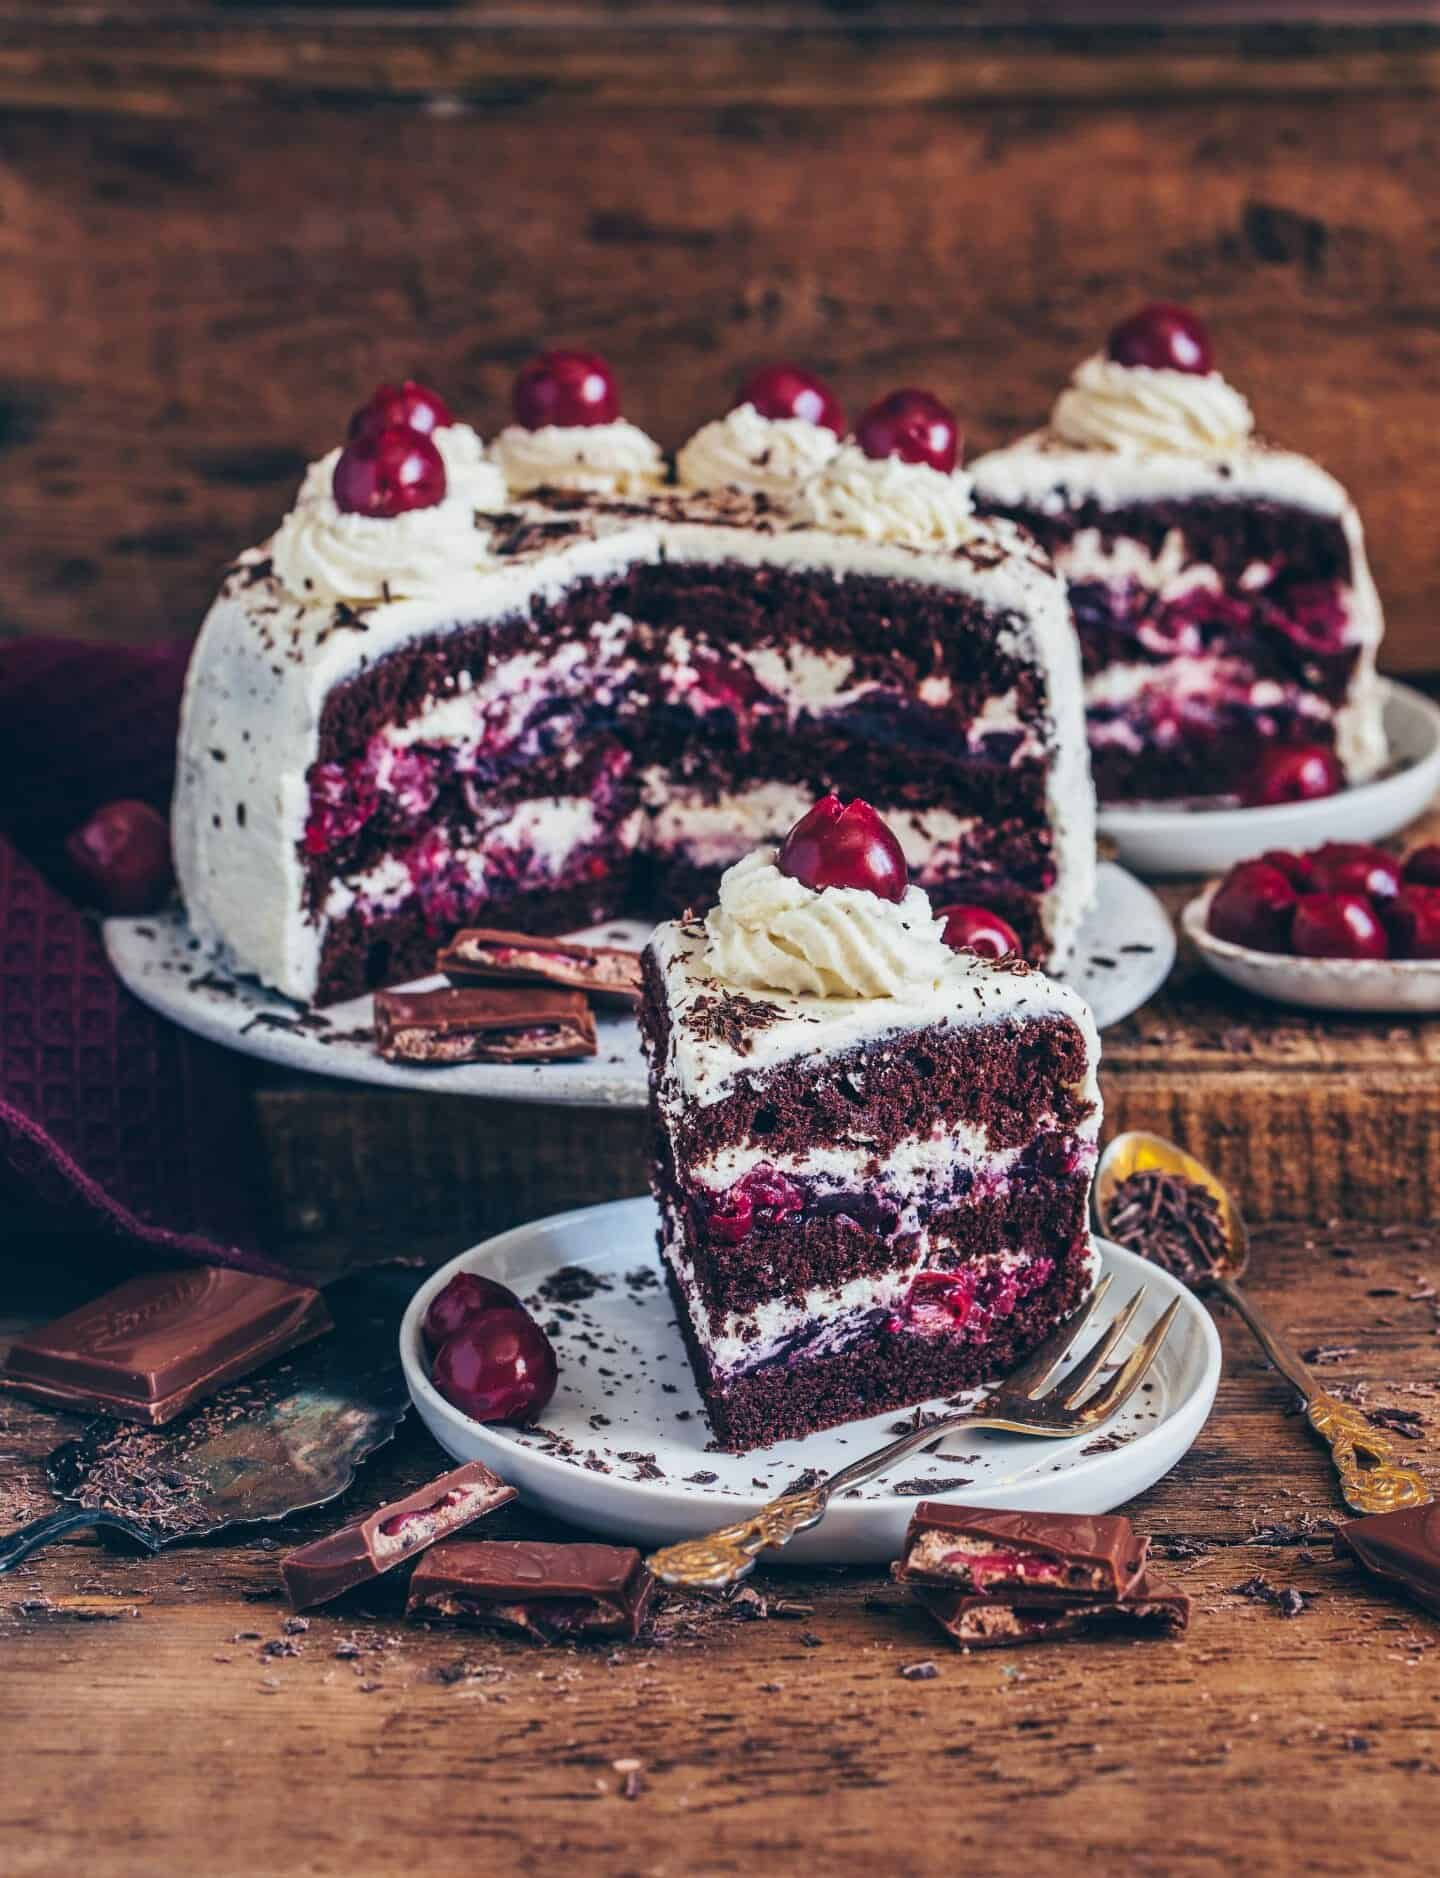 This Vegan Black Forest Cake is incredibly delicious. The recipe is easy, contains plant-based ingredients and can be made sugar-free and gluten-free.